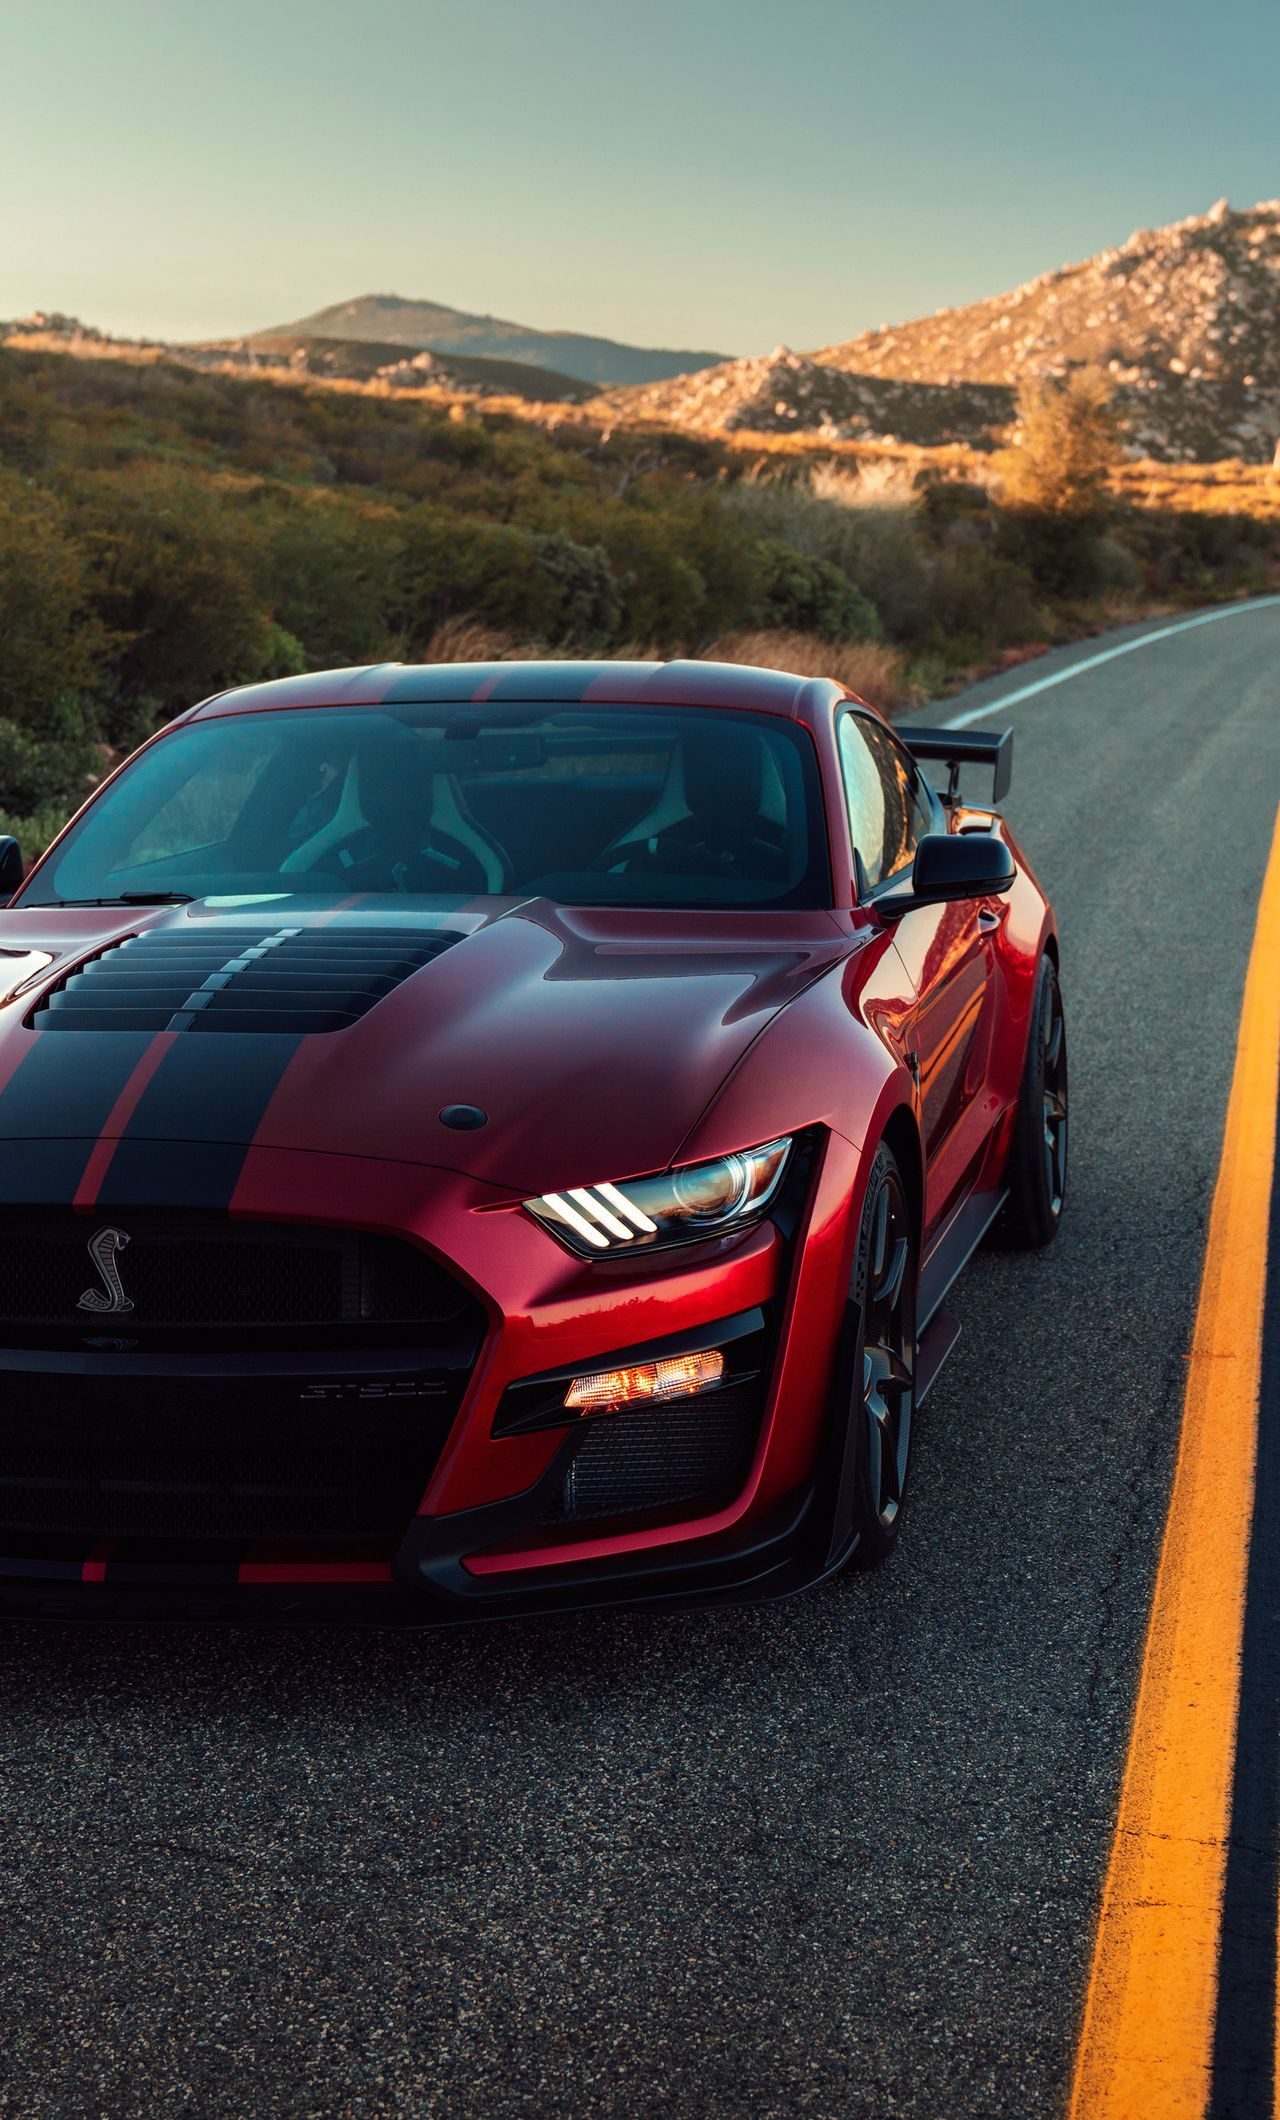 2020 Ford Mustang Gt500 iPhone Wallpapers 1280x2120